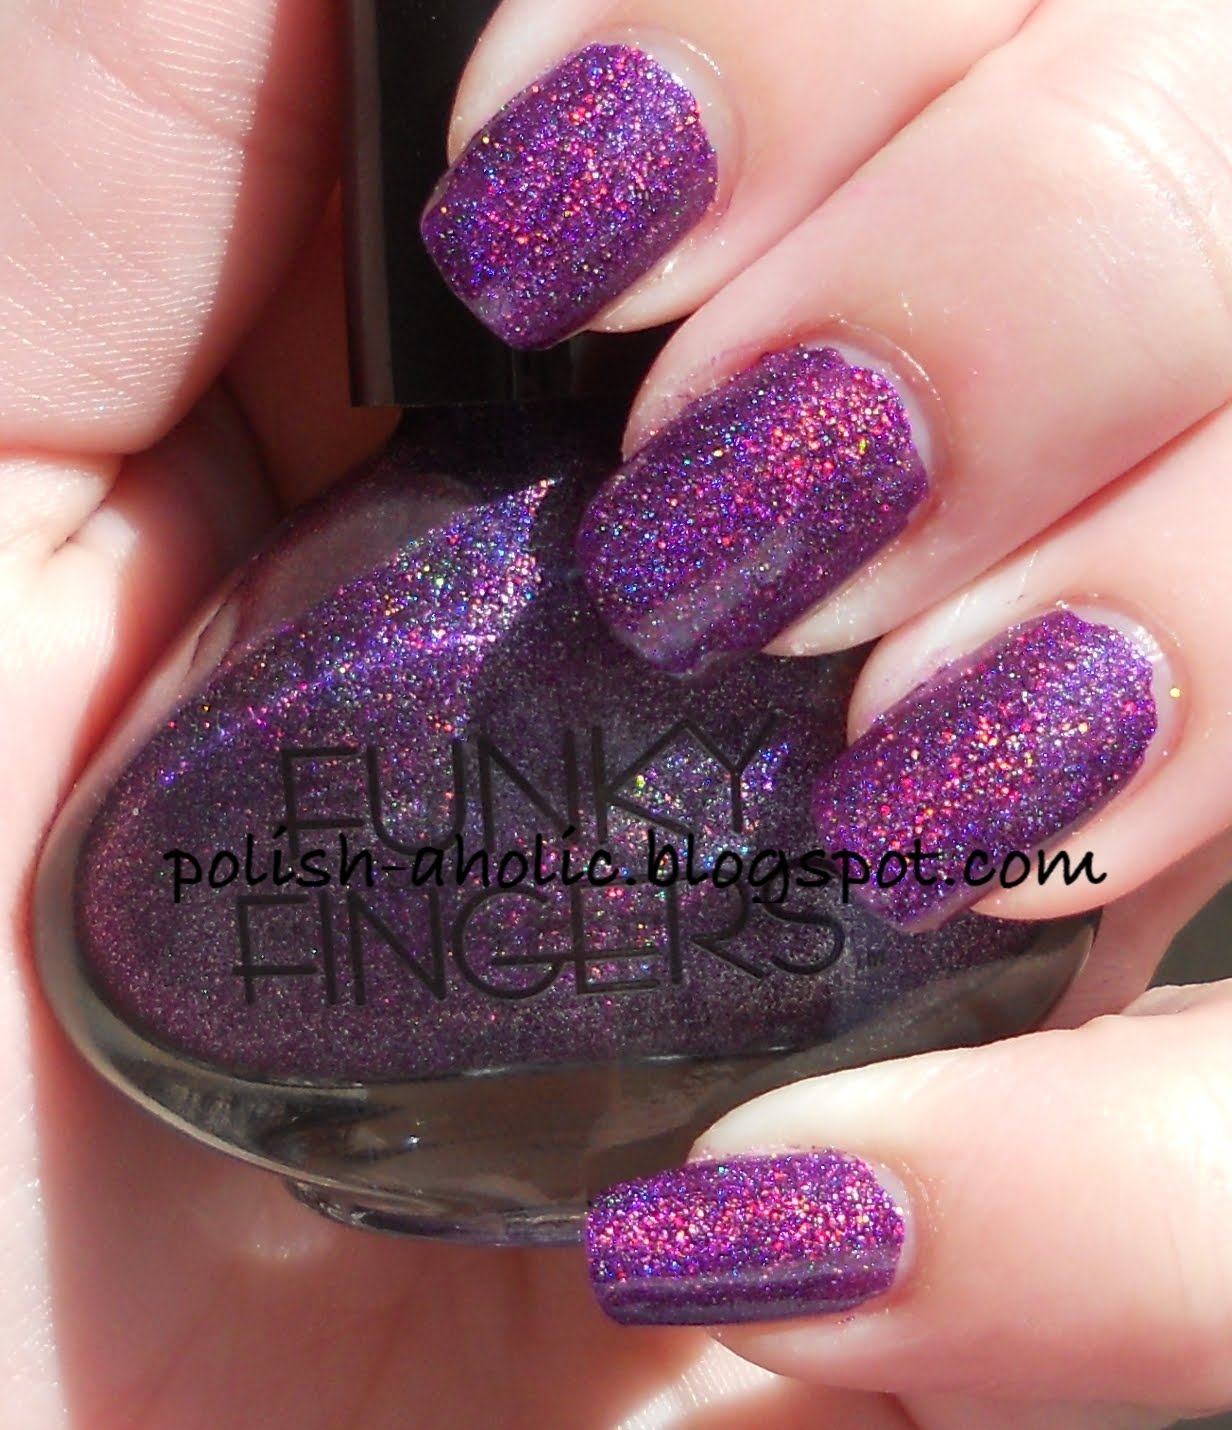 The PolishAholic: Funky Fingers Swatches!